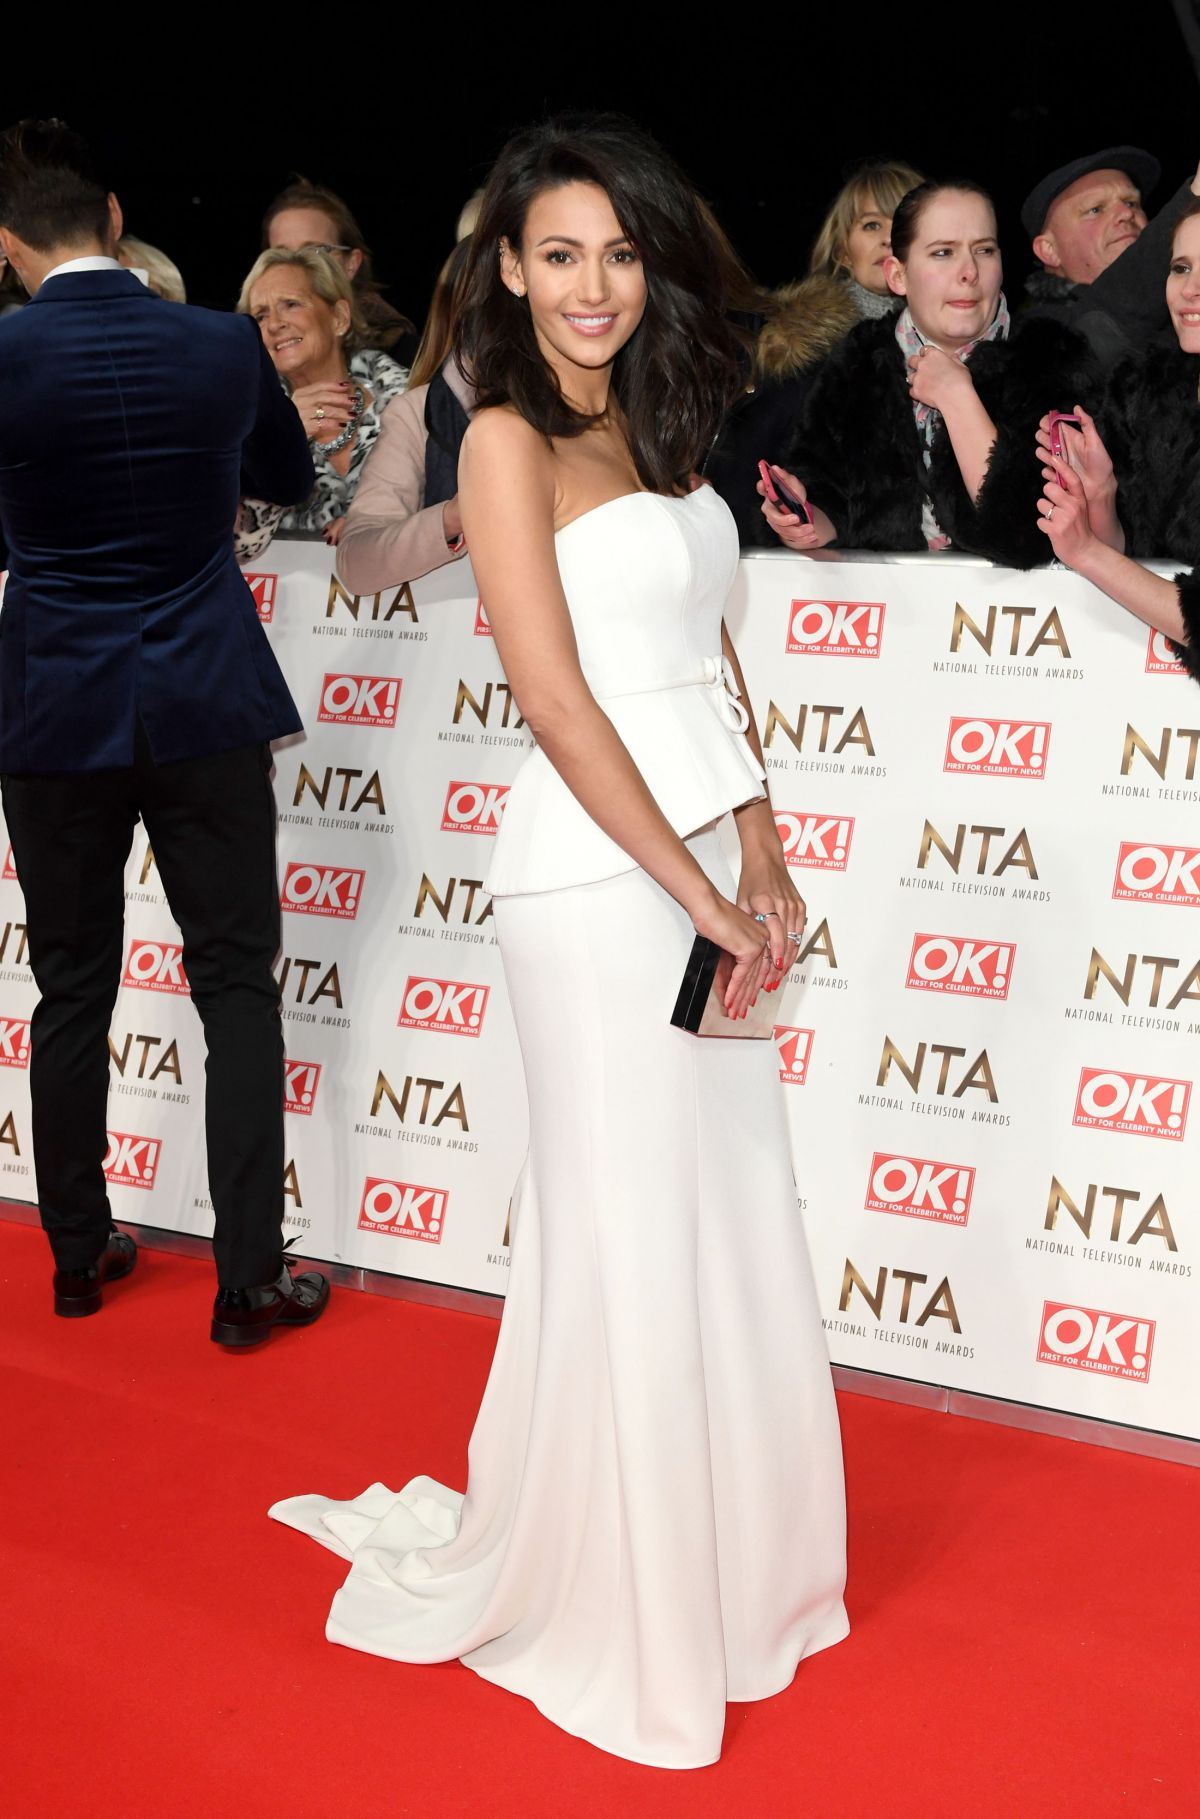 michelle-keegan-at-national-television-awards-in-london-01-25-2017_6.jpg